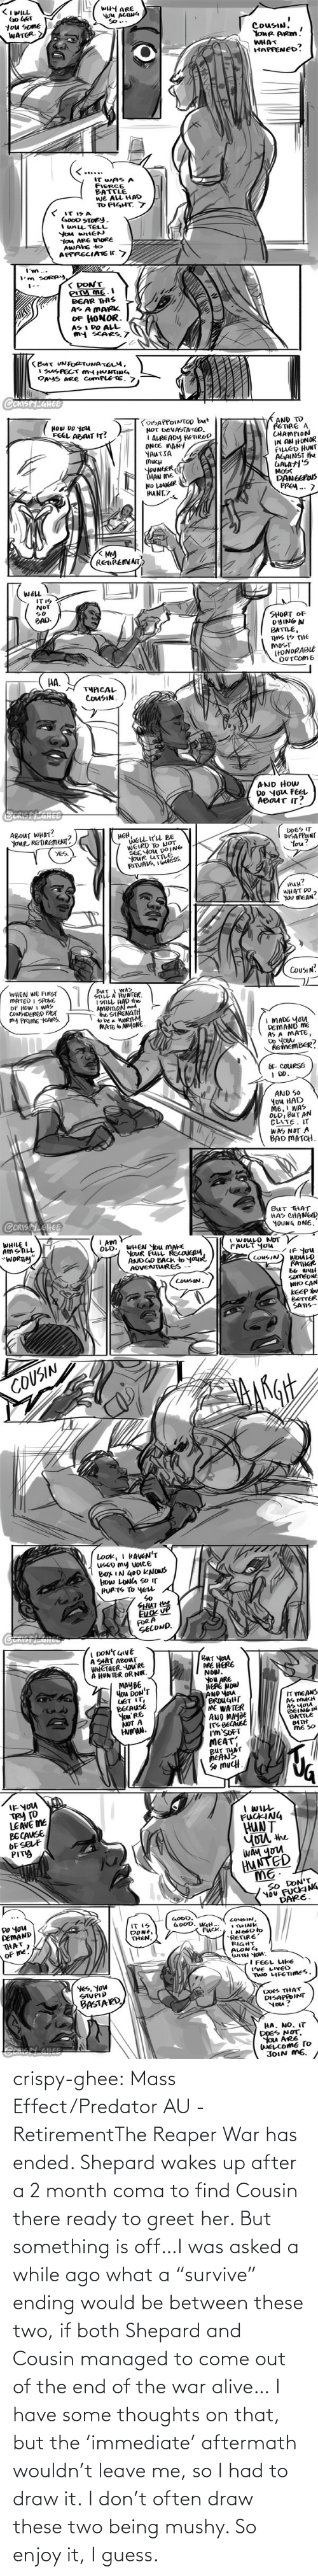 """Alive, Tumblr, and Blog: crispy-ghee:  Mass Effect/Predator AU - RetirementThe Reaper War has ended. Shepard wakes up after a 2 month coma to find Cousin there ready to greet her. But something is off…I was asked a while ago what a""""survive"""" ending would be between these two, if both Shepard and Cousin managed to come out of the end of the war alive… I have some thoughts on that, but the'immediate' aftermath wouldn't leave me, so I had to draw it.I don't often draw these two being mushy. So enjoy it, I guess."""